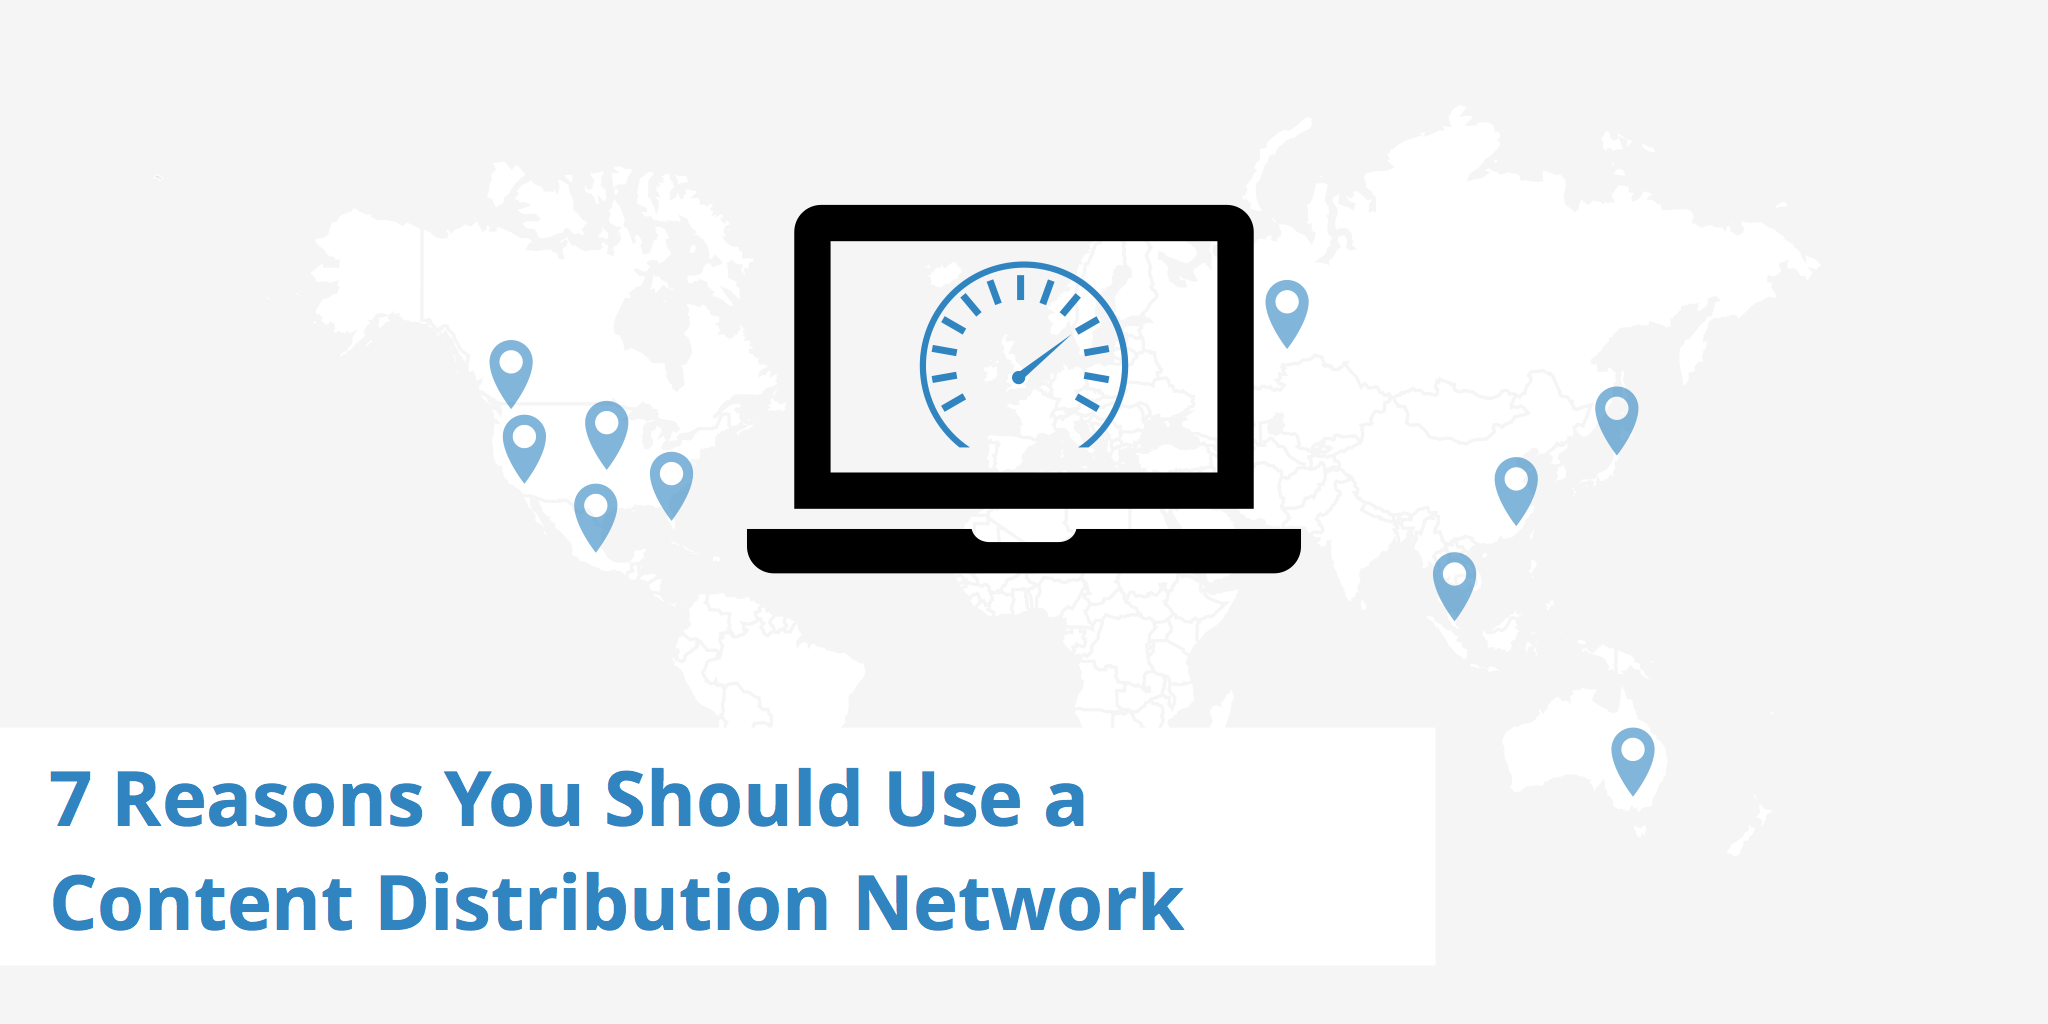 7 Reasons You Should Use a Content Distribution Network